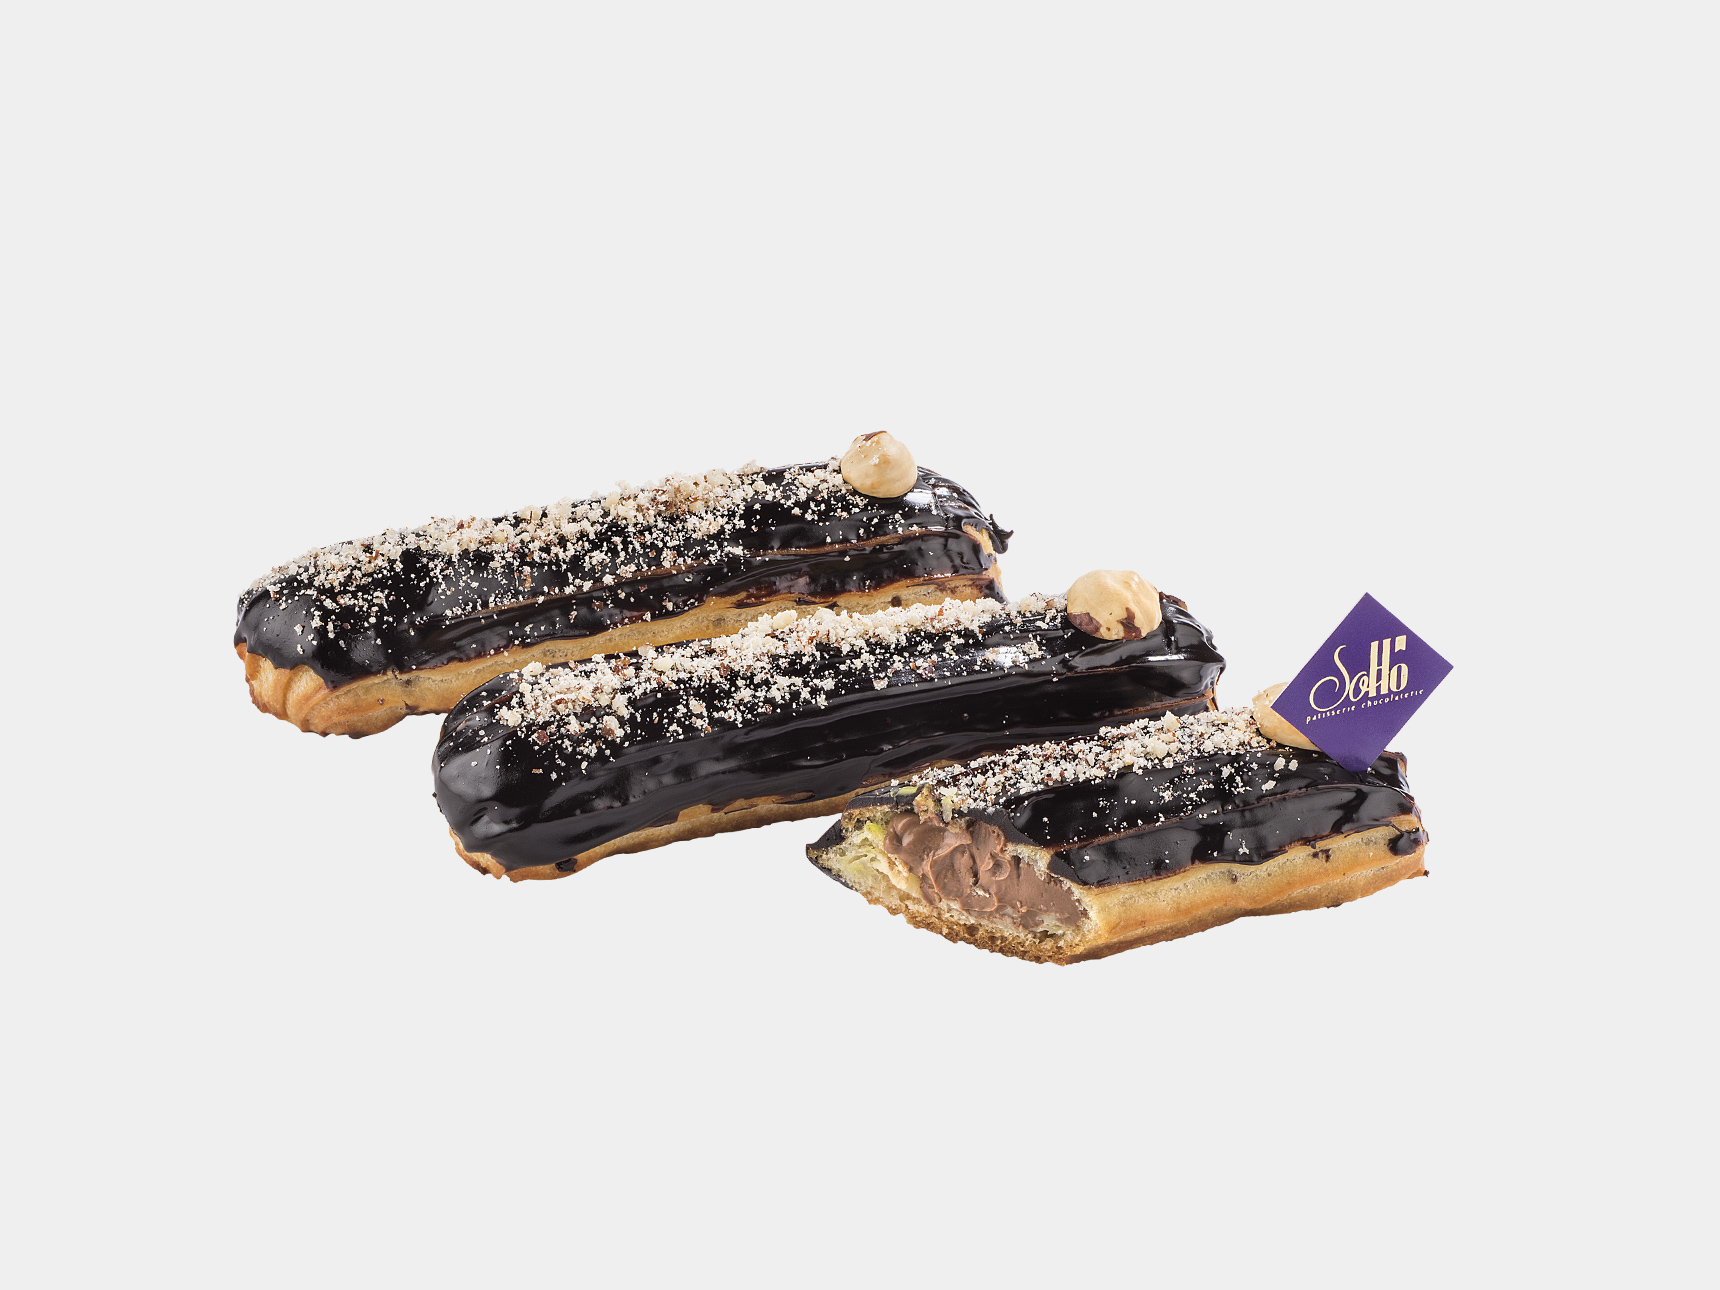 French Eclair Chocolate